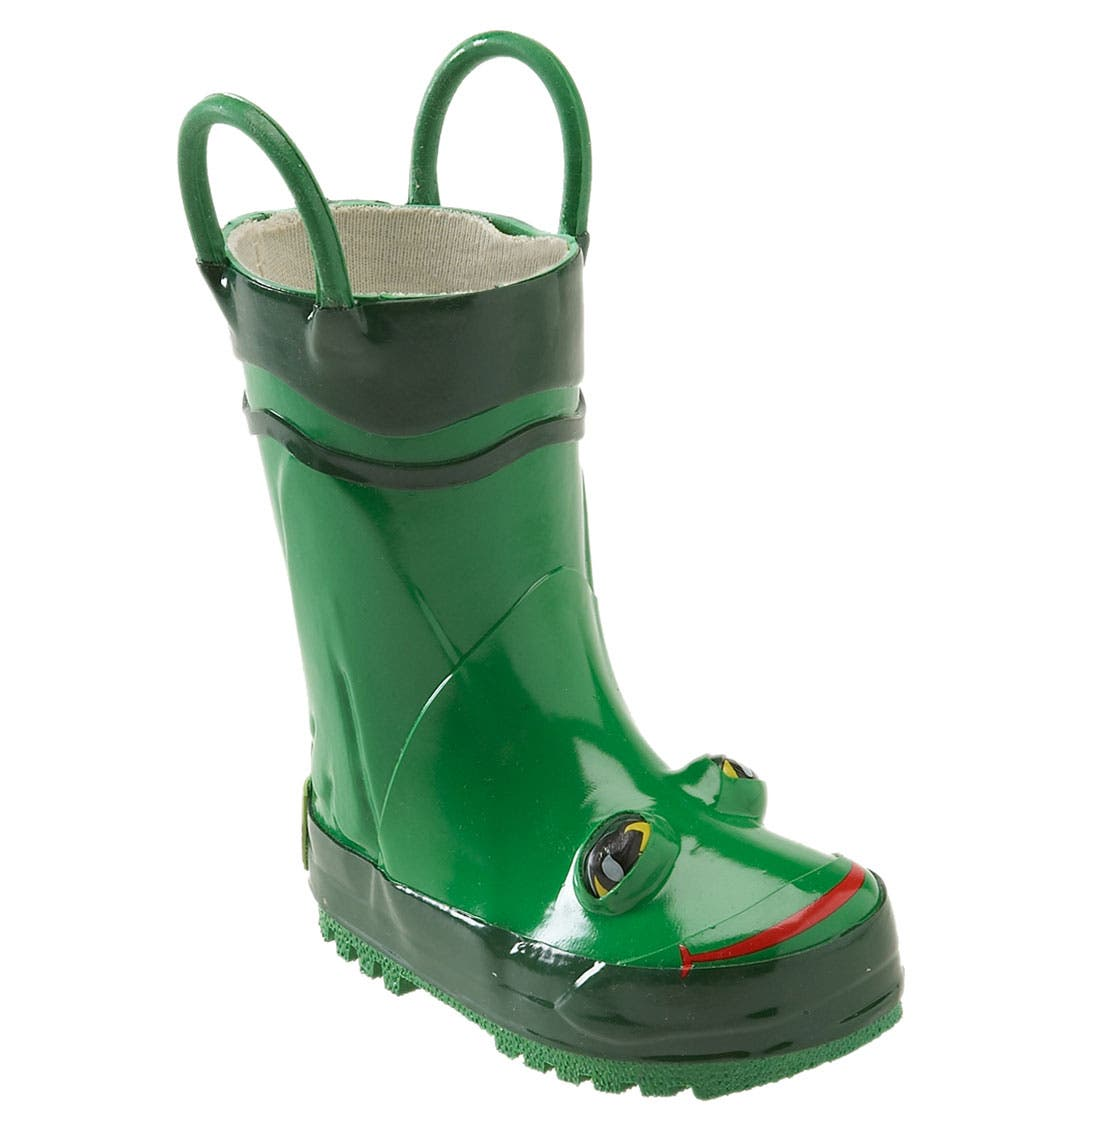 Main Image - Western Chief 'Frog' Rain Boot (Walker, Toddler, Little Kid & Big Kid)